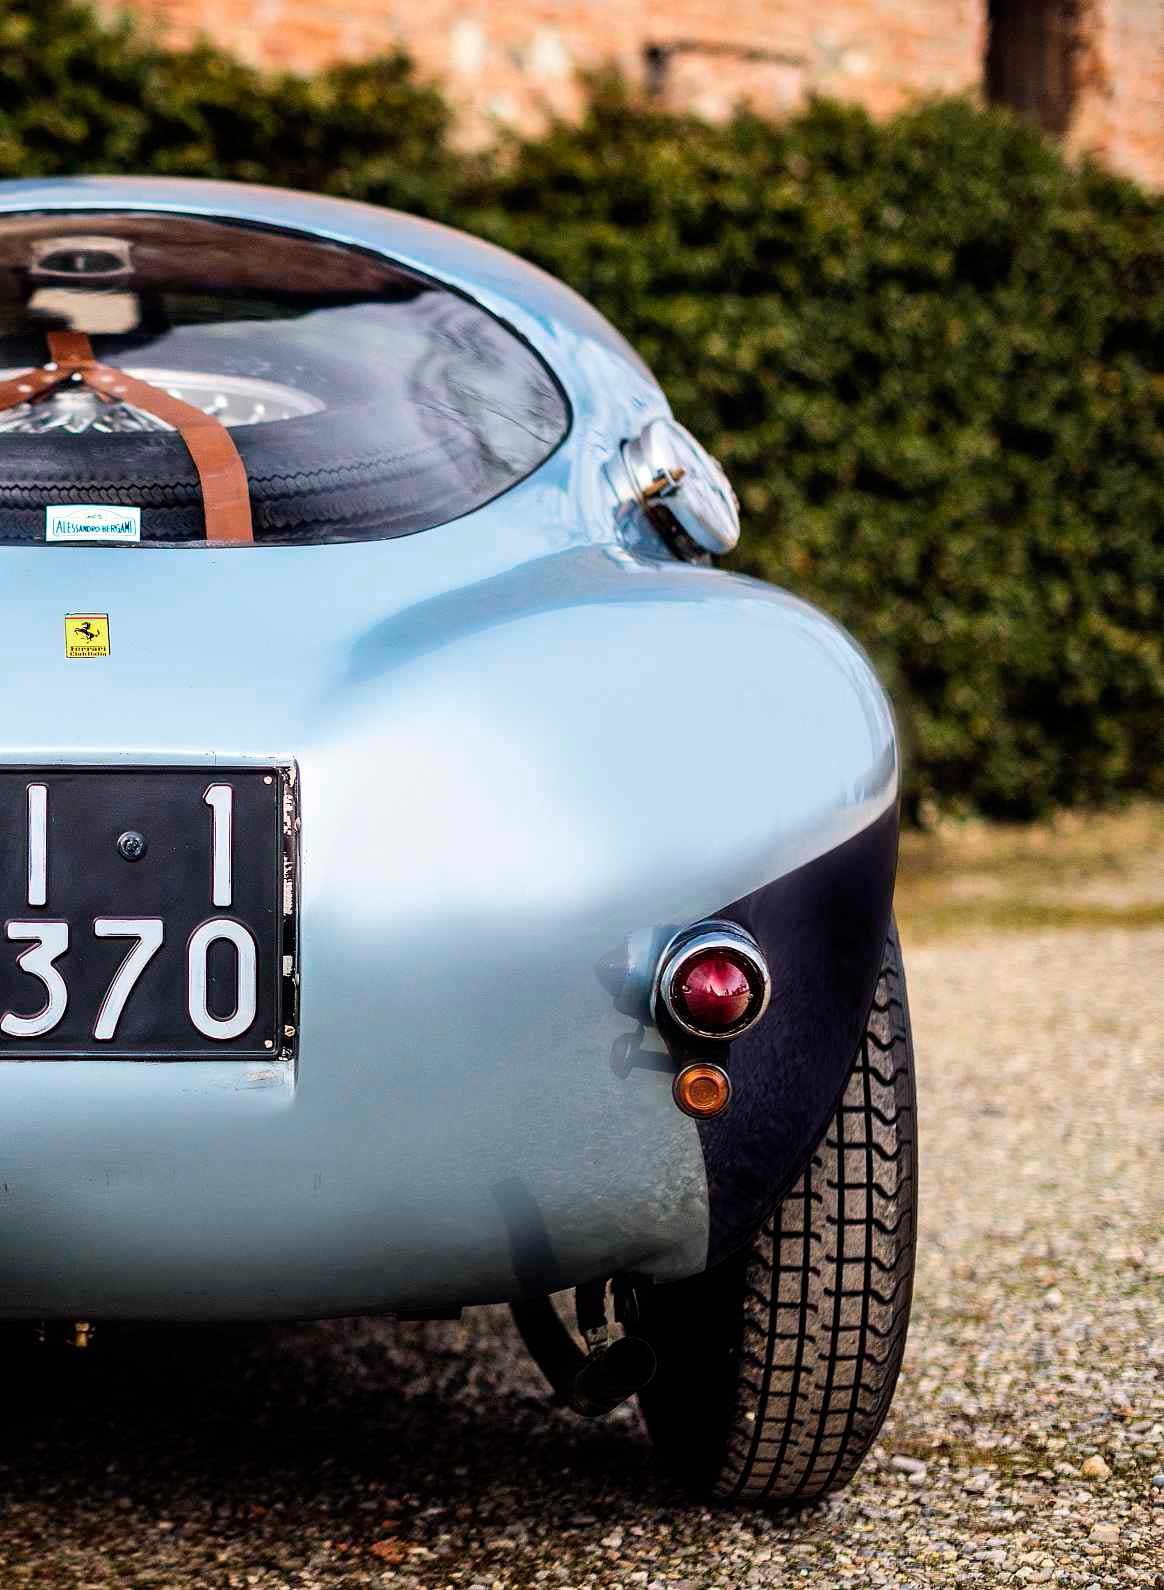 1950 Ferrari 166 MM/212 Export 'Uovo' by Fontana - Marzotto brothers rebodied race car test